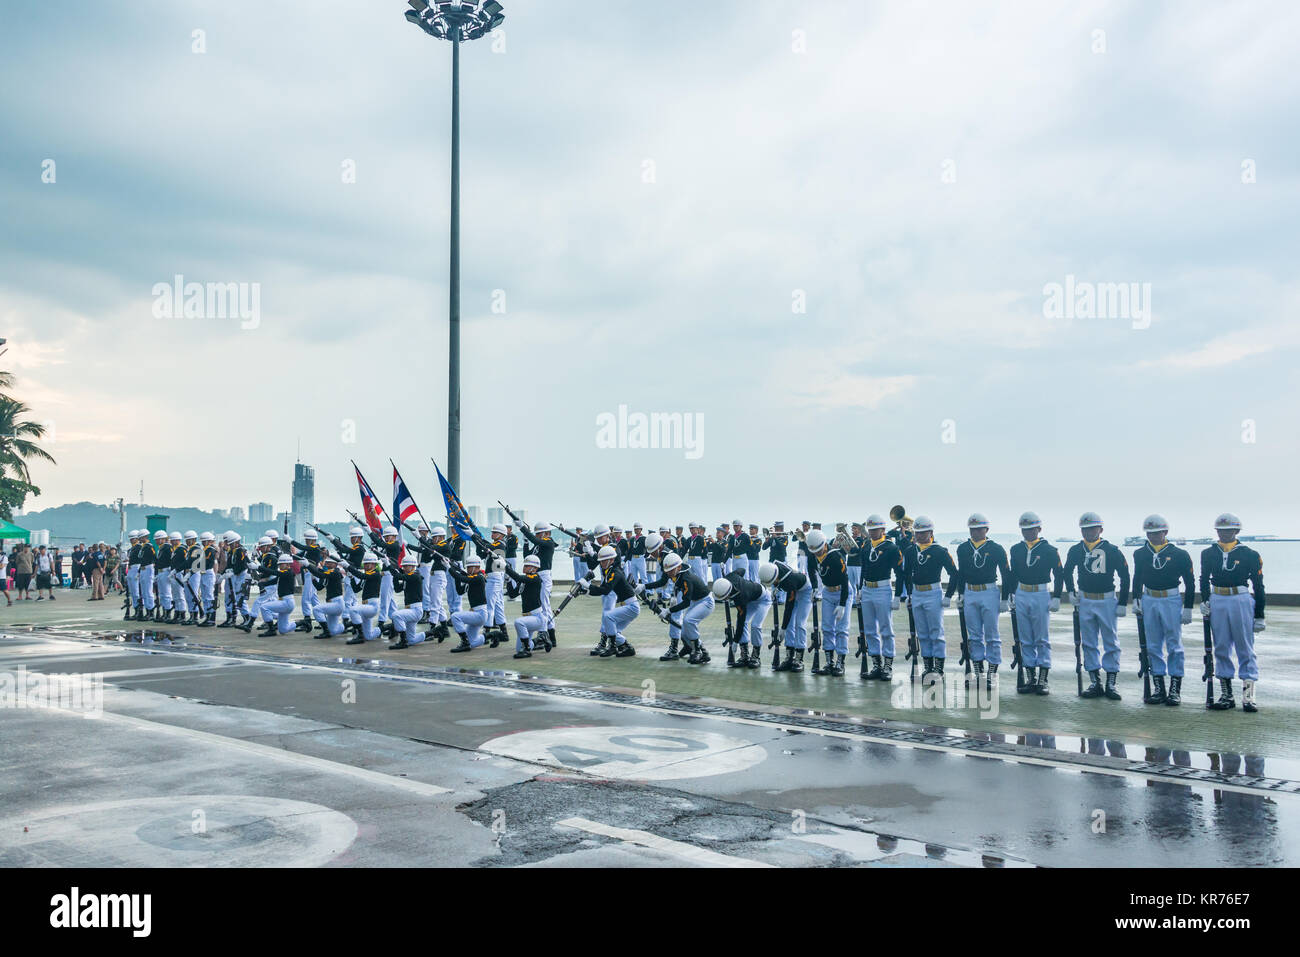 Pattaya, Thailand - November 15, 2017: Thai navy demonstrating Fancy Drill on the 50th anniversary ASEAN International - Stock Image